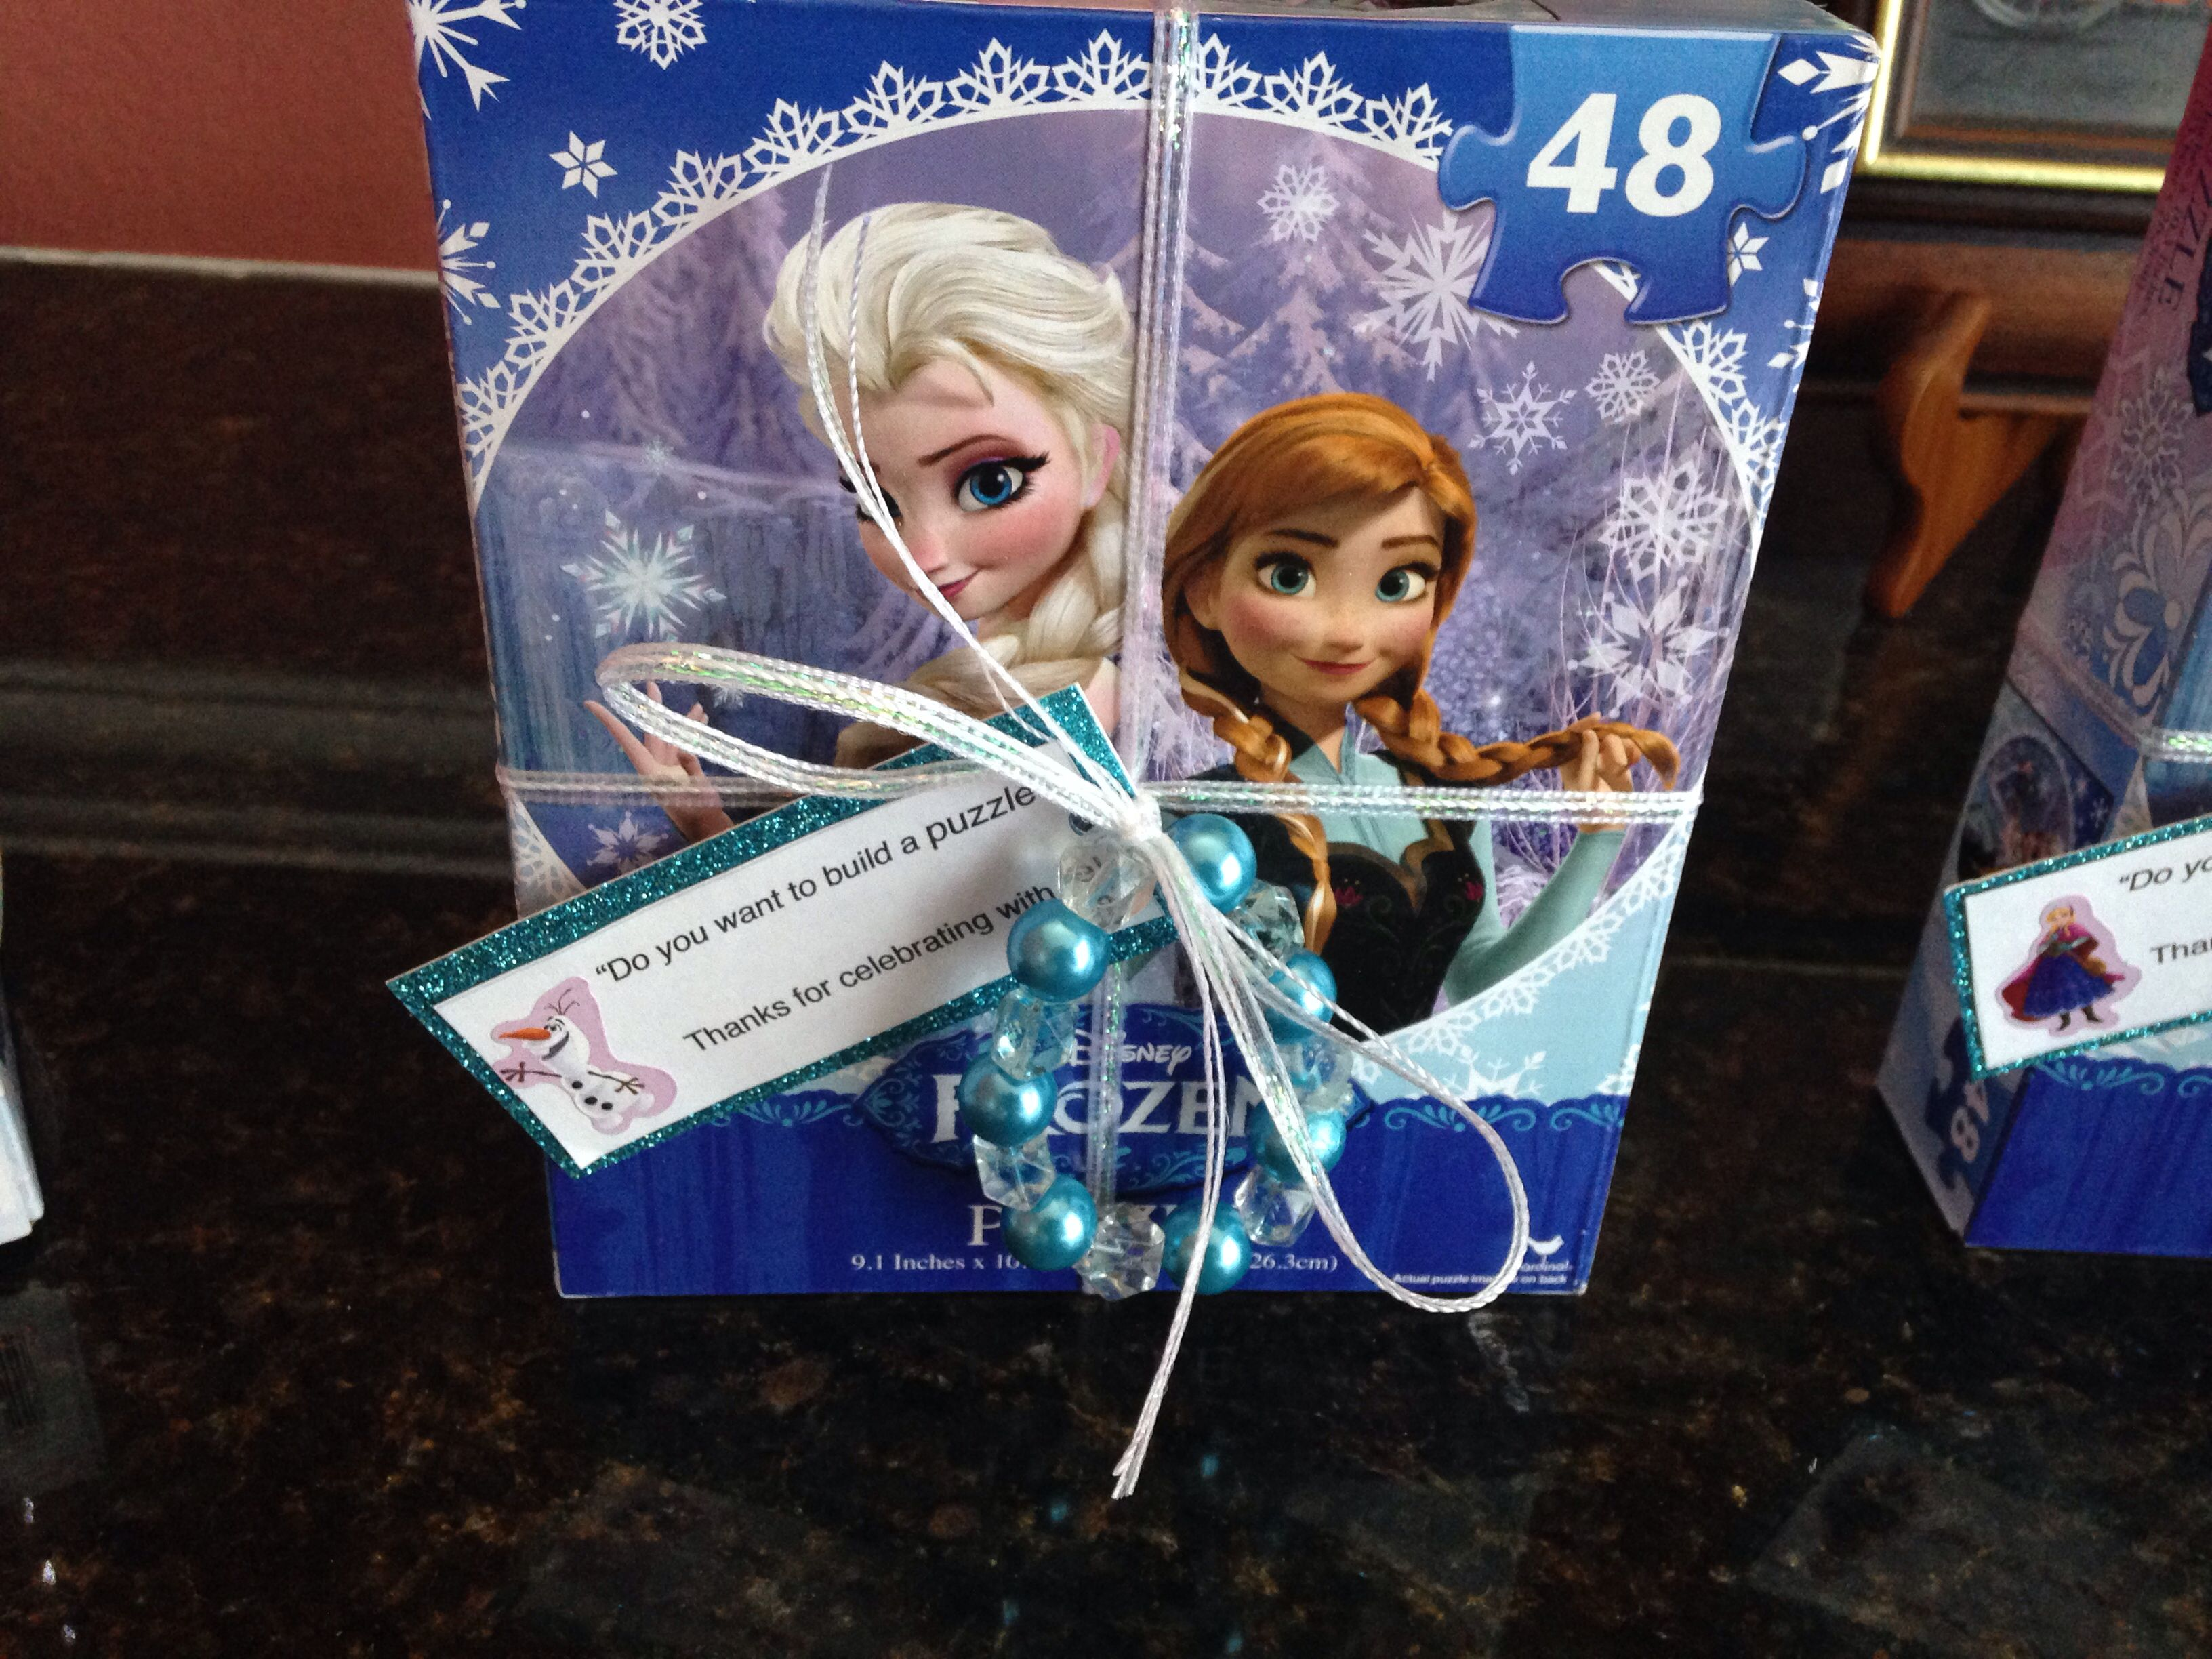 Disney Frozen Birthday Party Favor Do You Want To Build A Puzzle